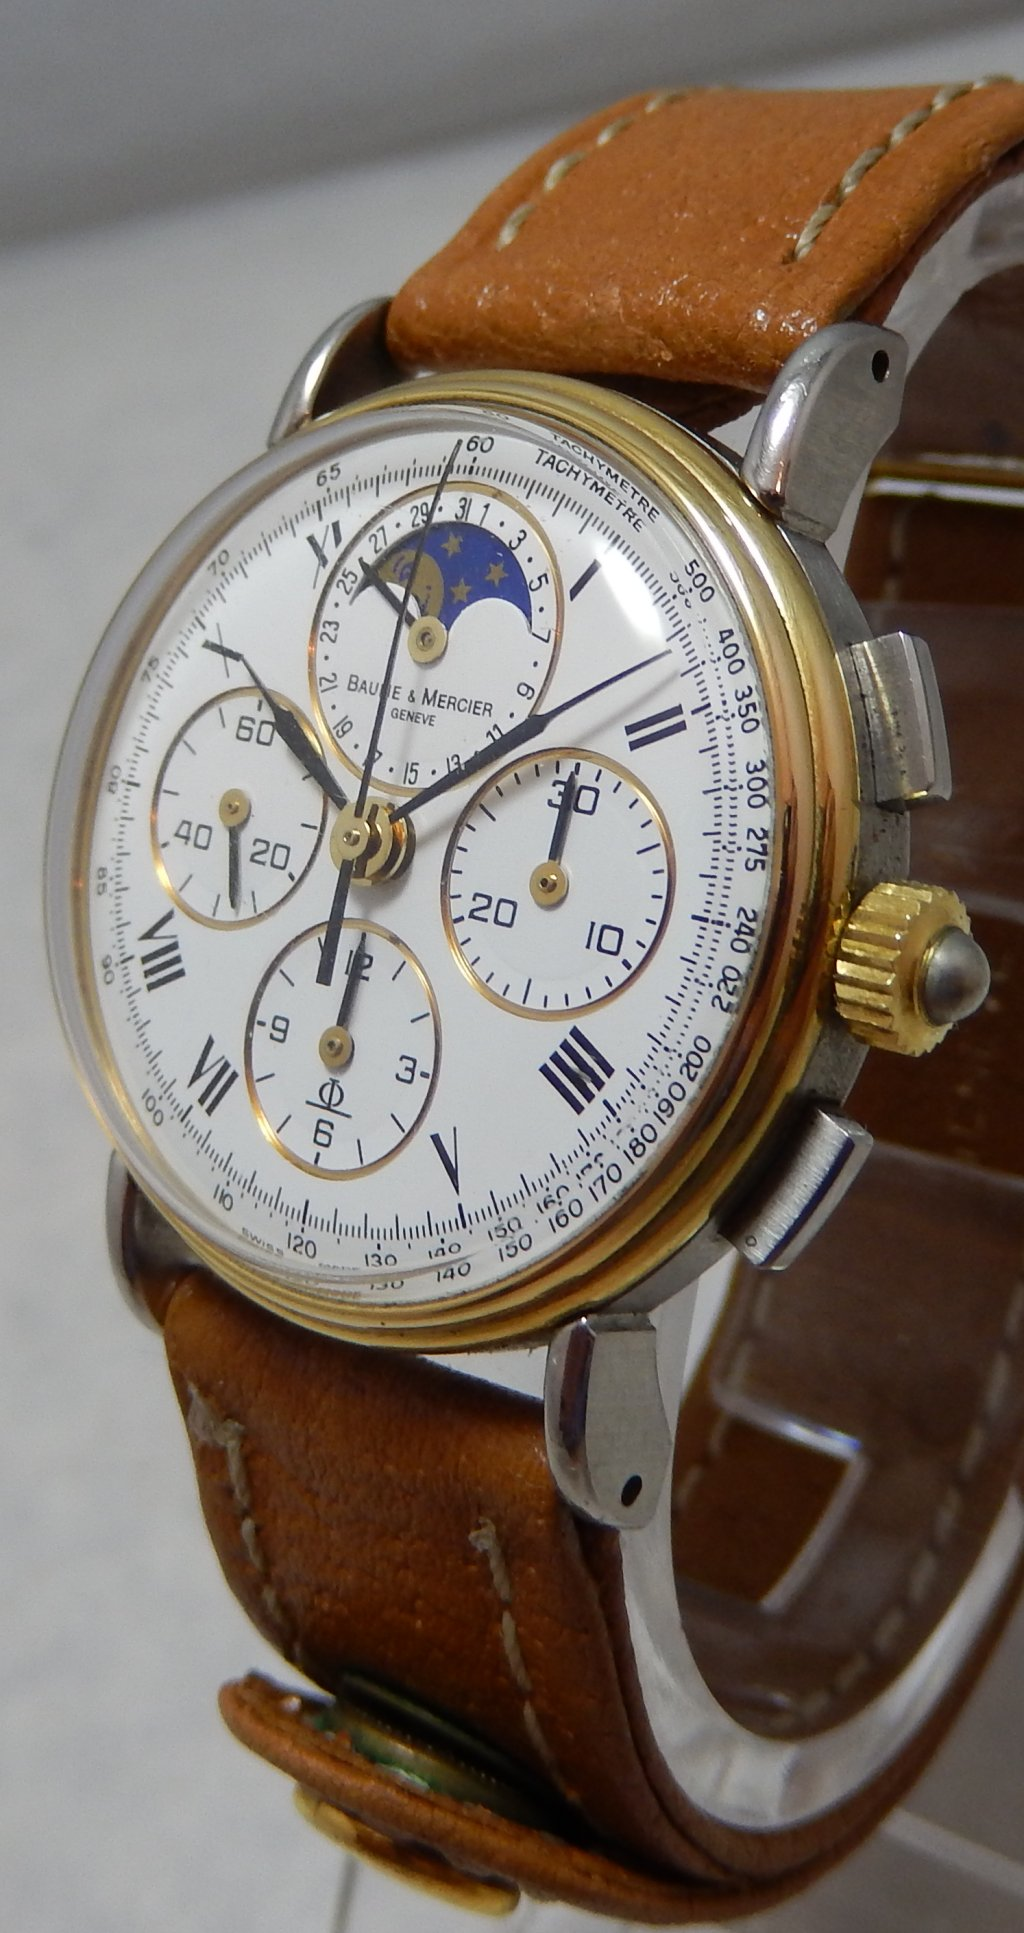 Details about Baume \u0026 Mercier 18k/ss Moonphase Chronograph Unisex Watch  With Date 6102.099